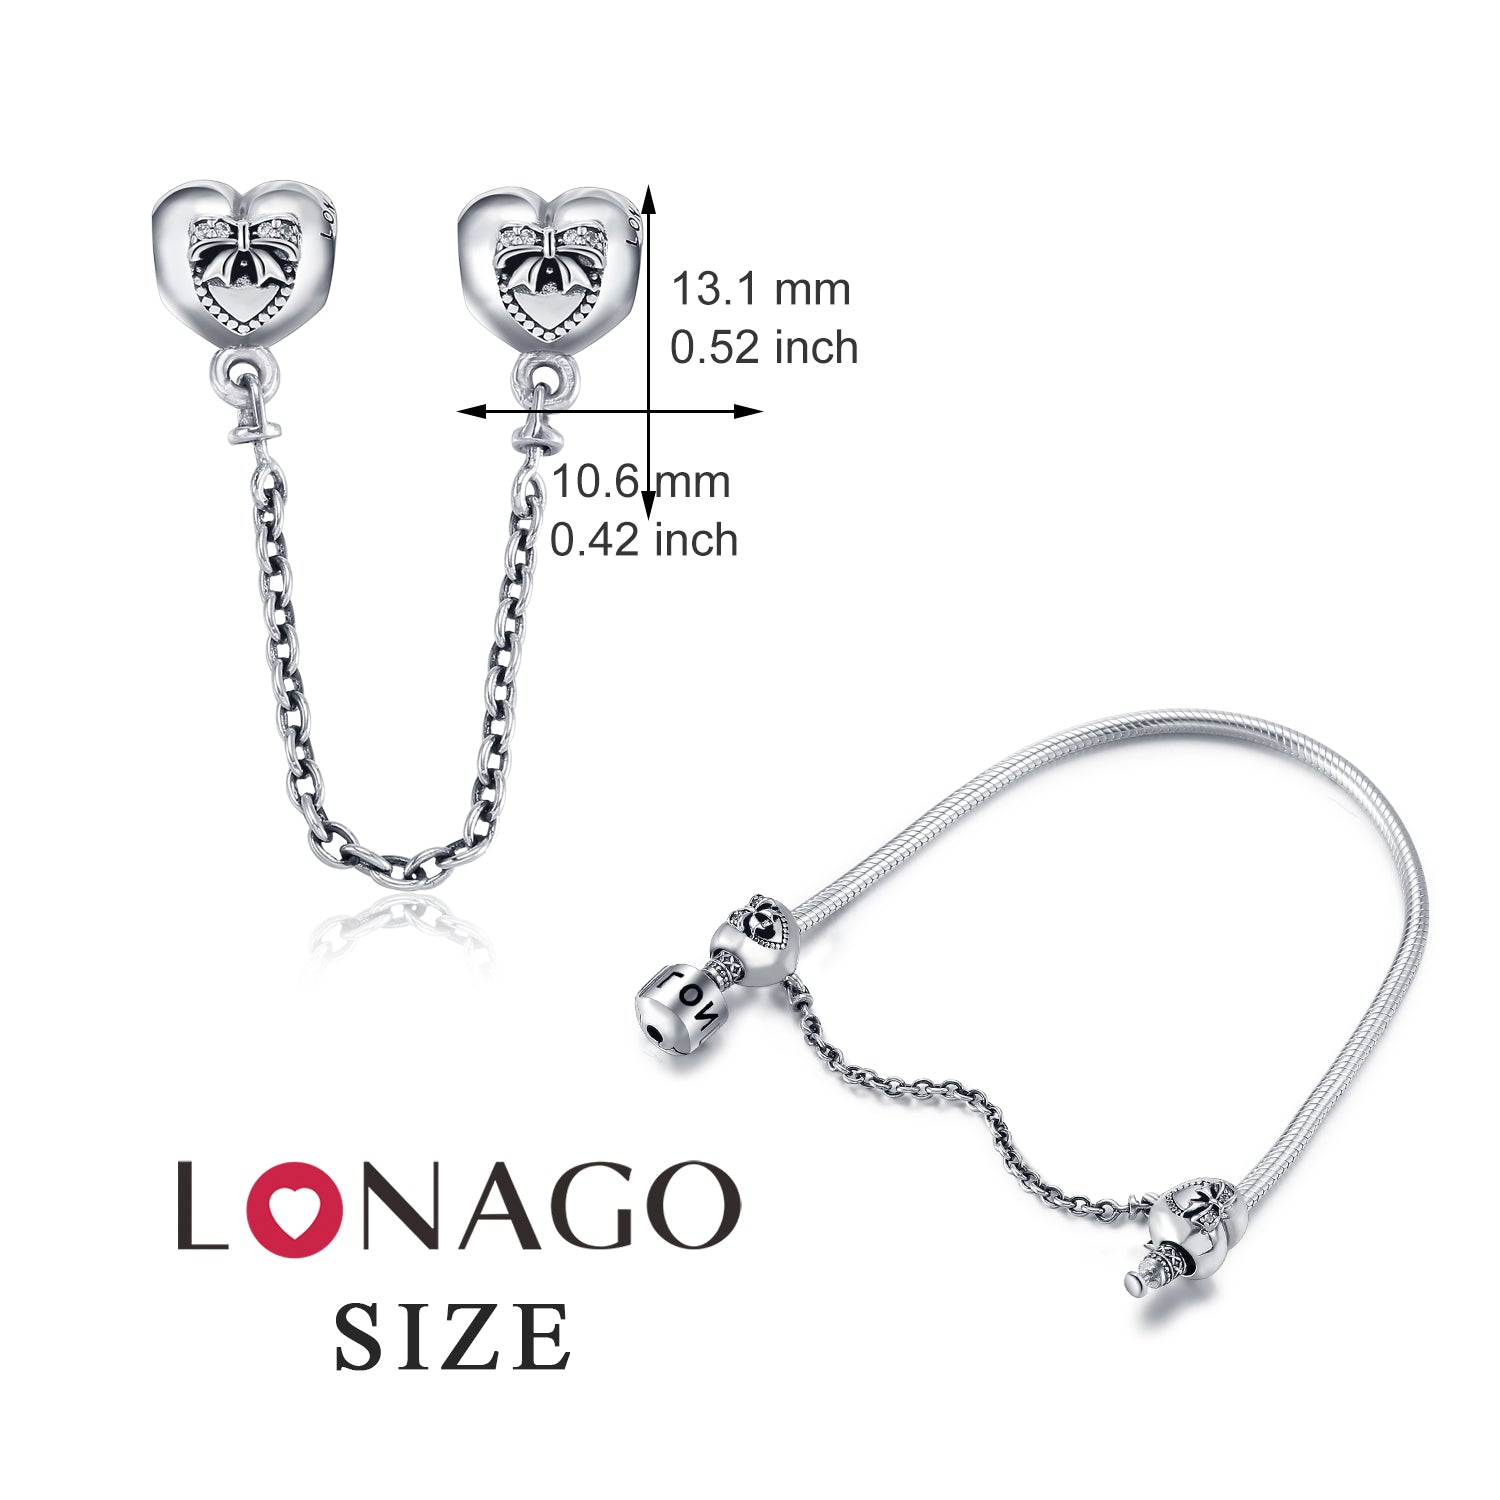 Bowknot Safety Chain Charms Beads For Bracelet Design 925 Sterling Silver